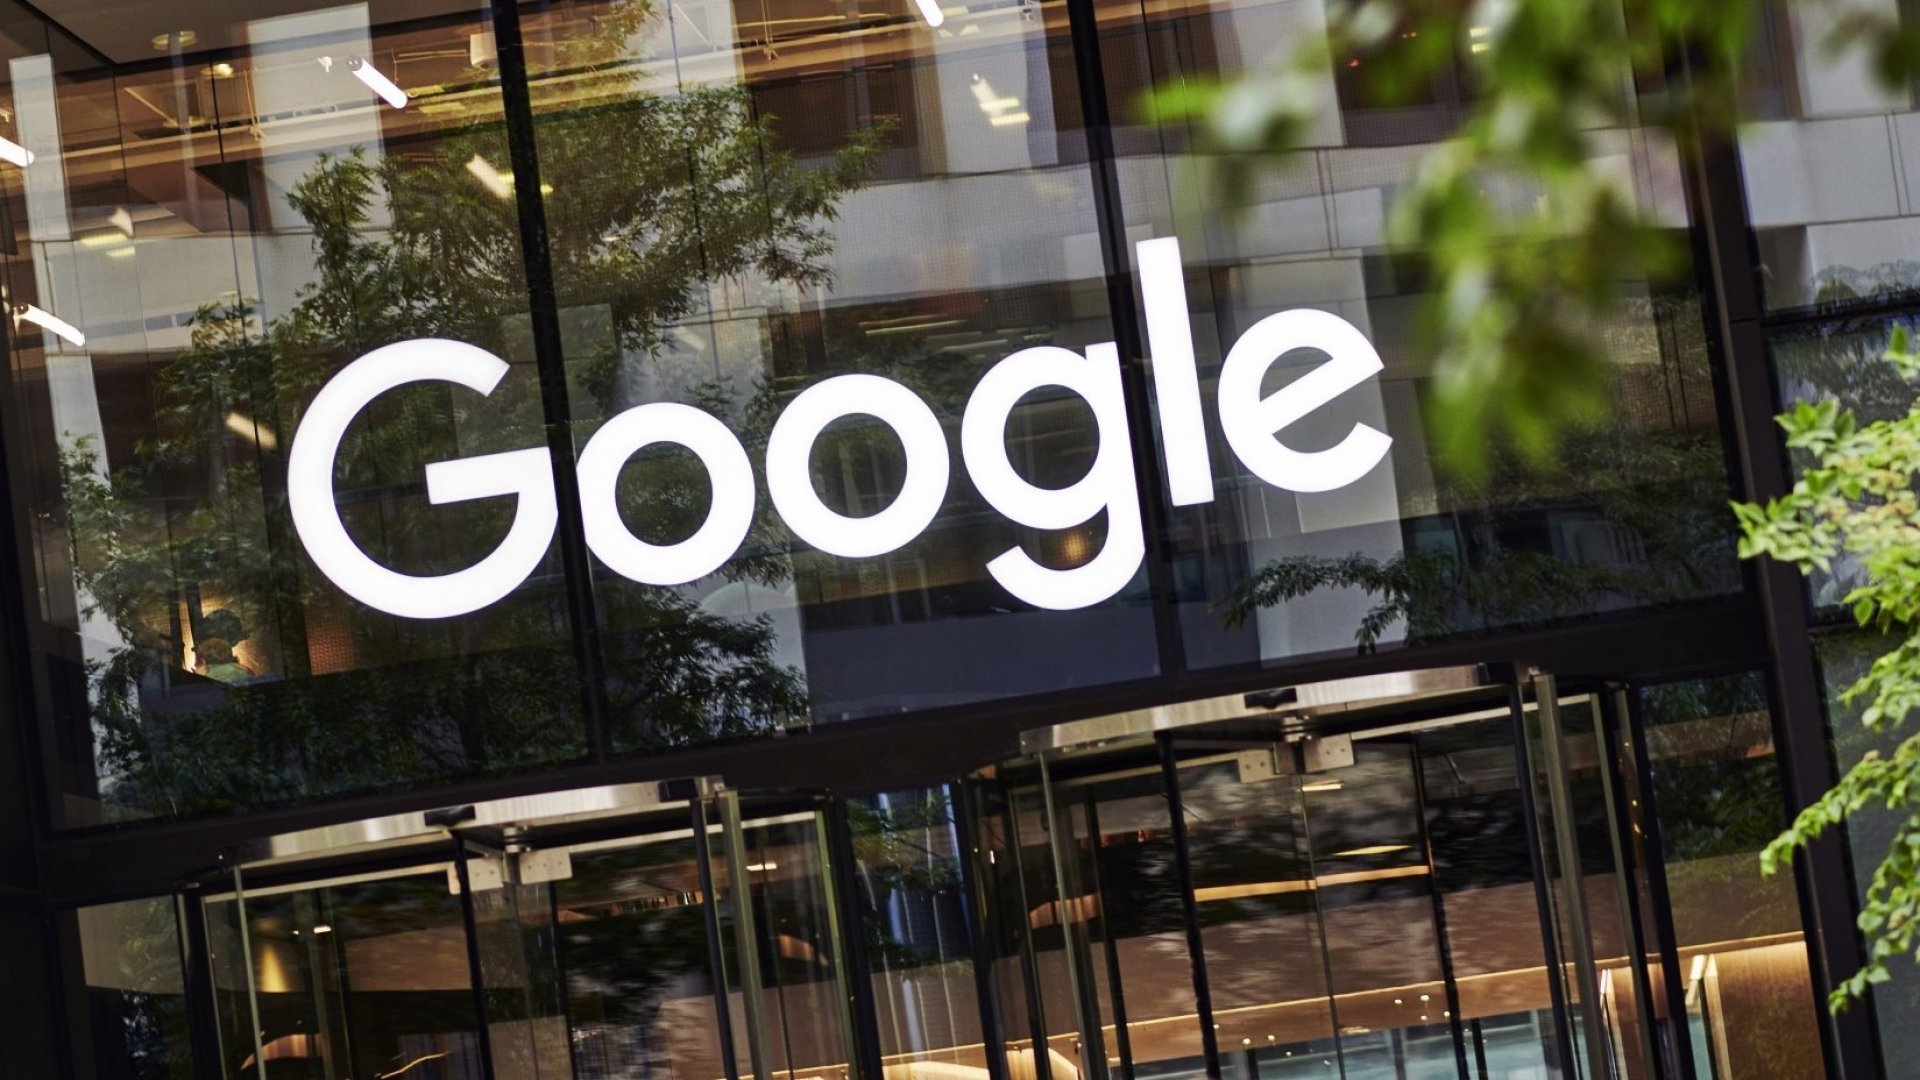 Google Is Planning to Offer Checking Accounts in Partnership With Banks. Here's Why That's Bad News for Your Privacy